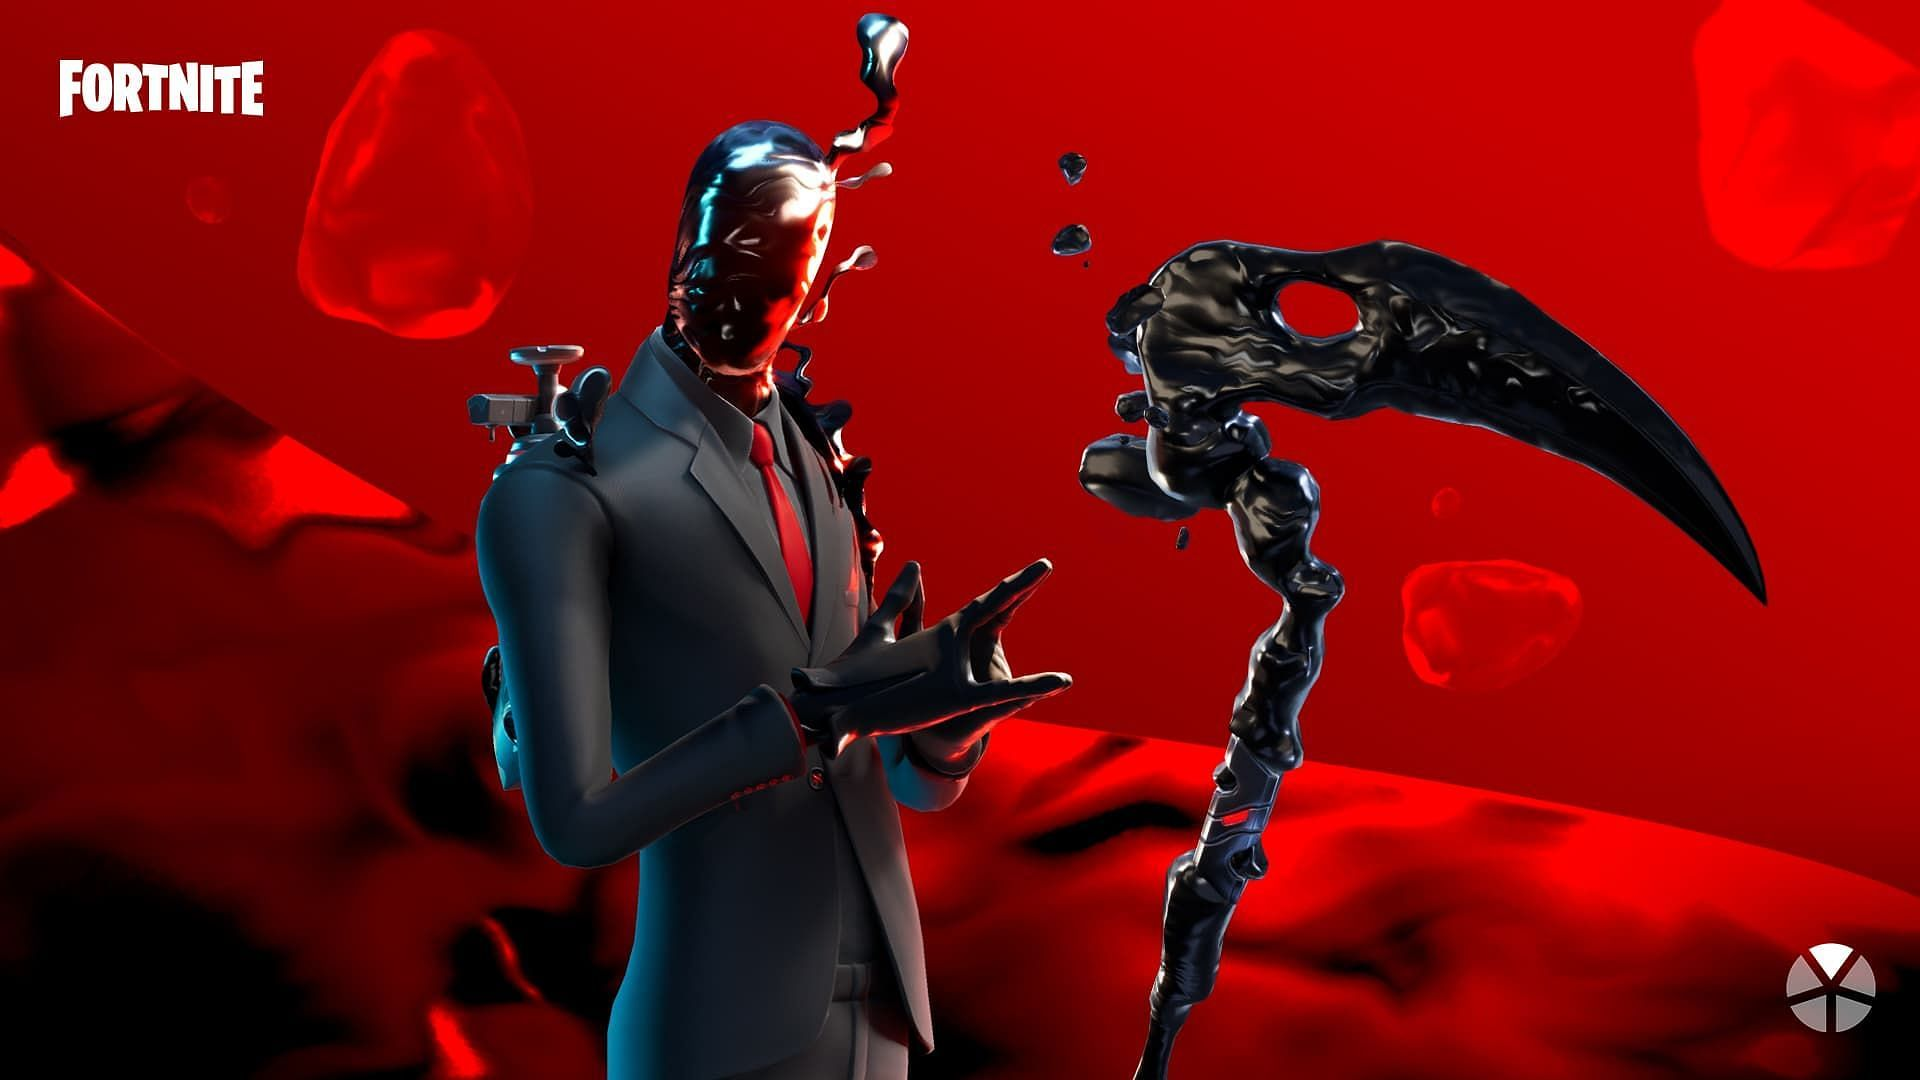 Chaos Agent's alternate style in Fortnite (Image via Epic Games)